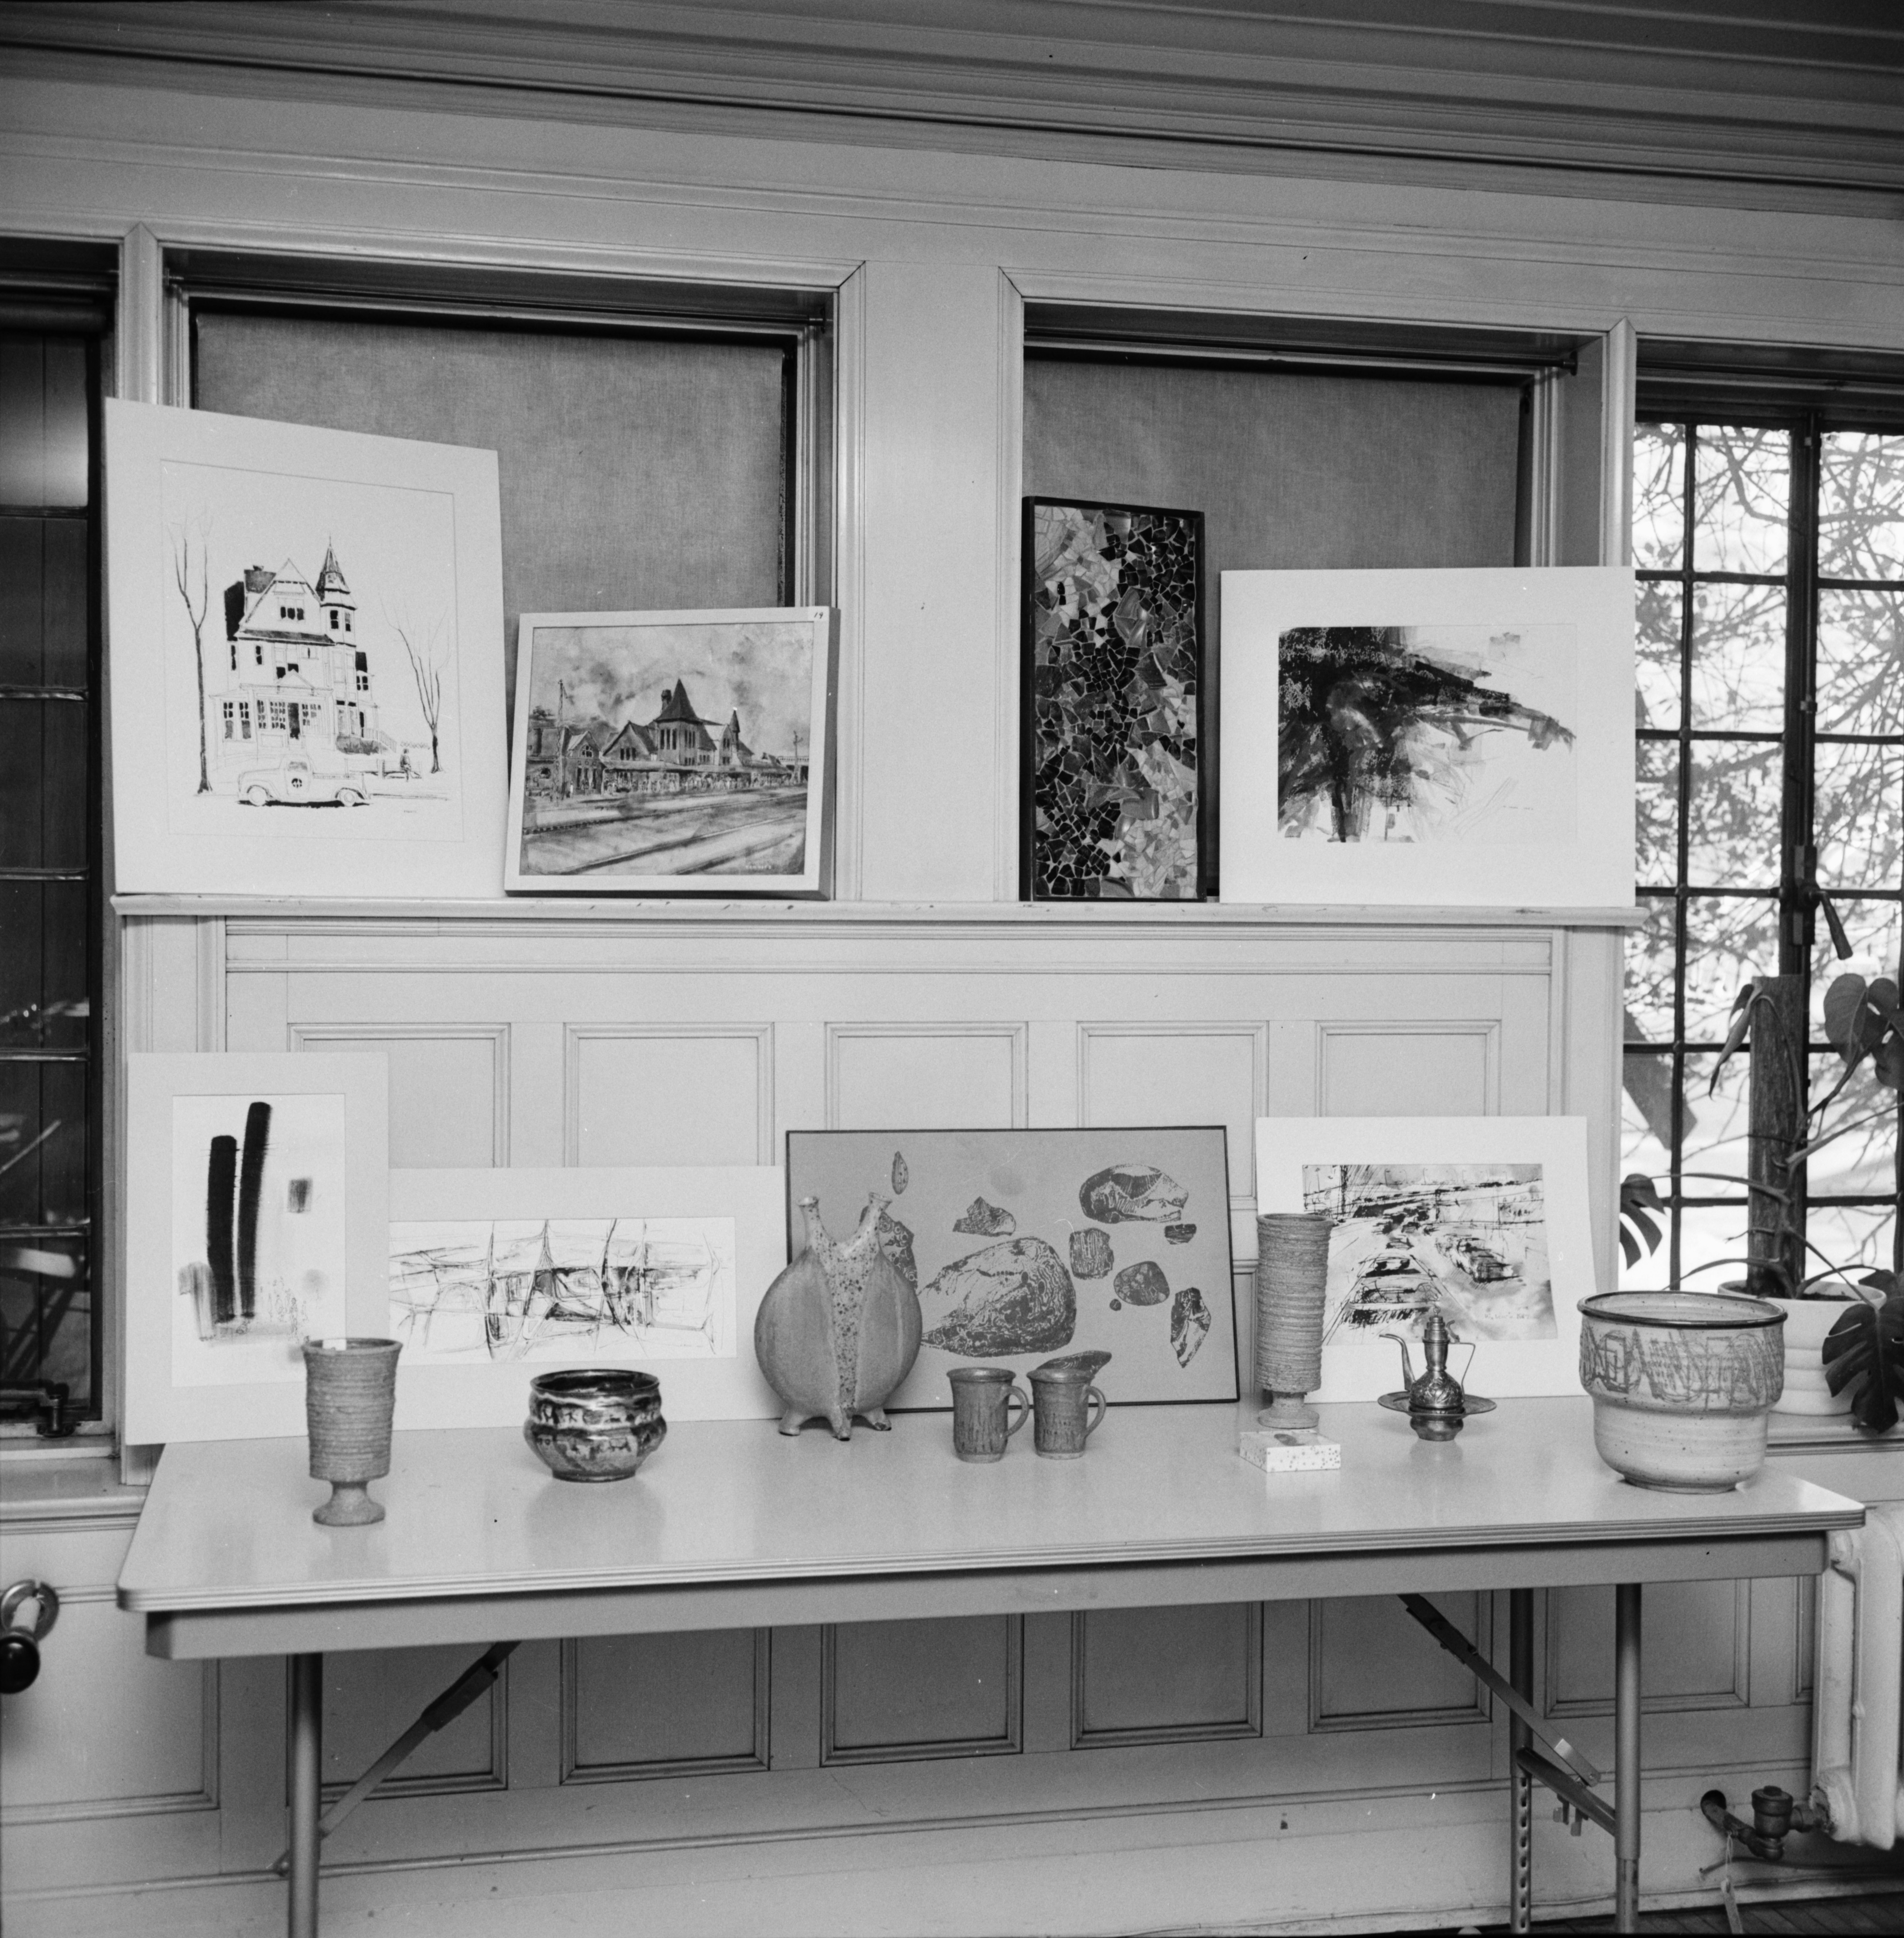 Art Auction at First Unitarian Church, February 1964 image